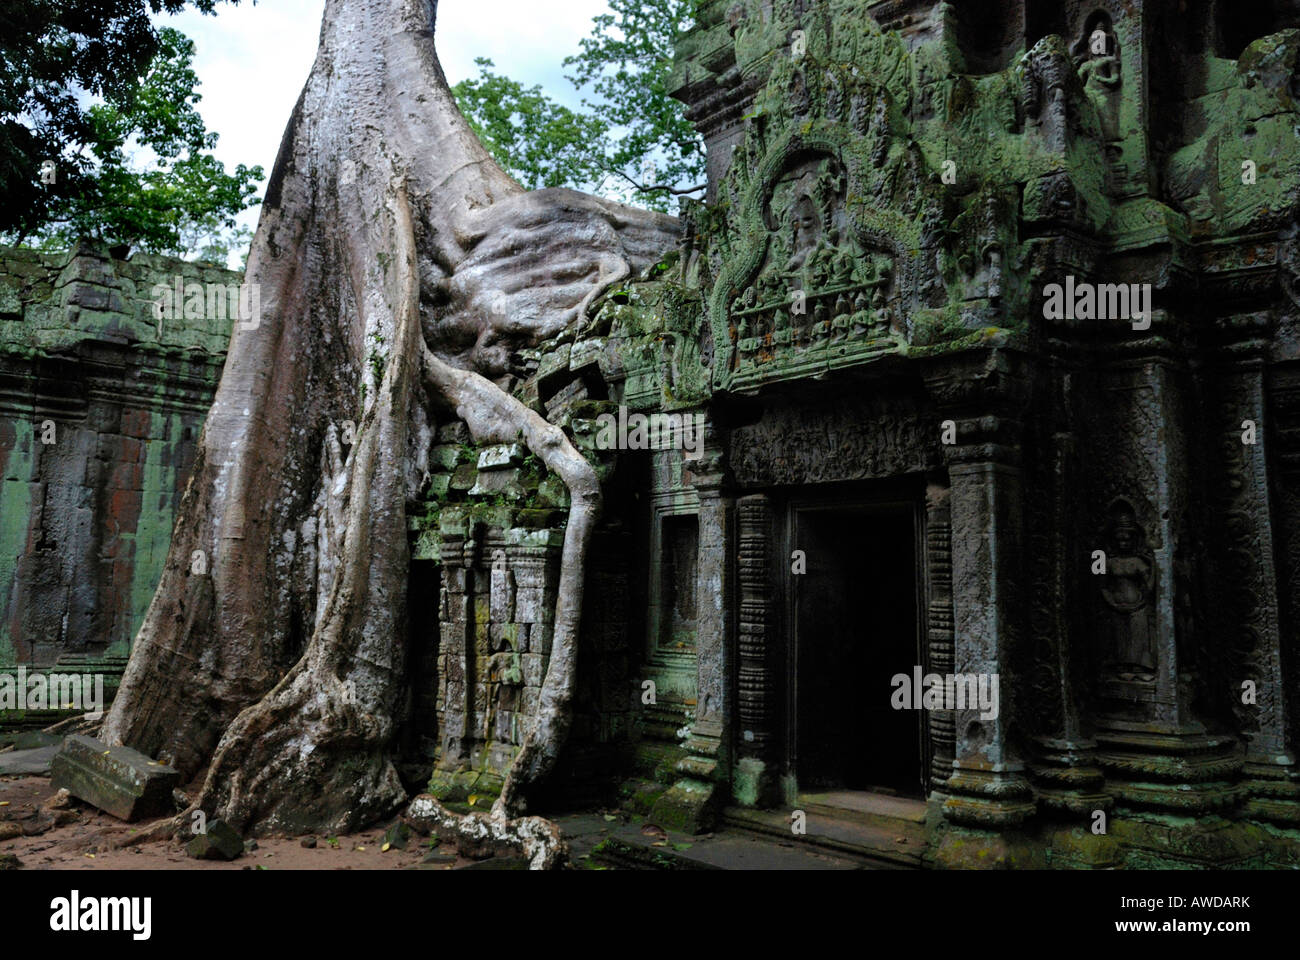 Giant roots of a tropical tree growing over the runins of Ta Prohm tempel, Angkor, Cambodia - Stock Image